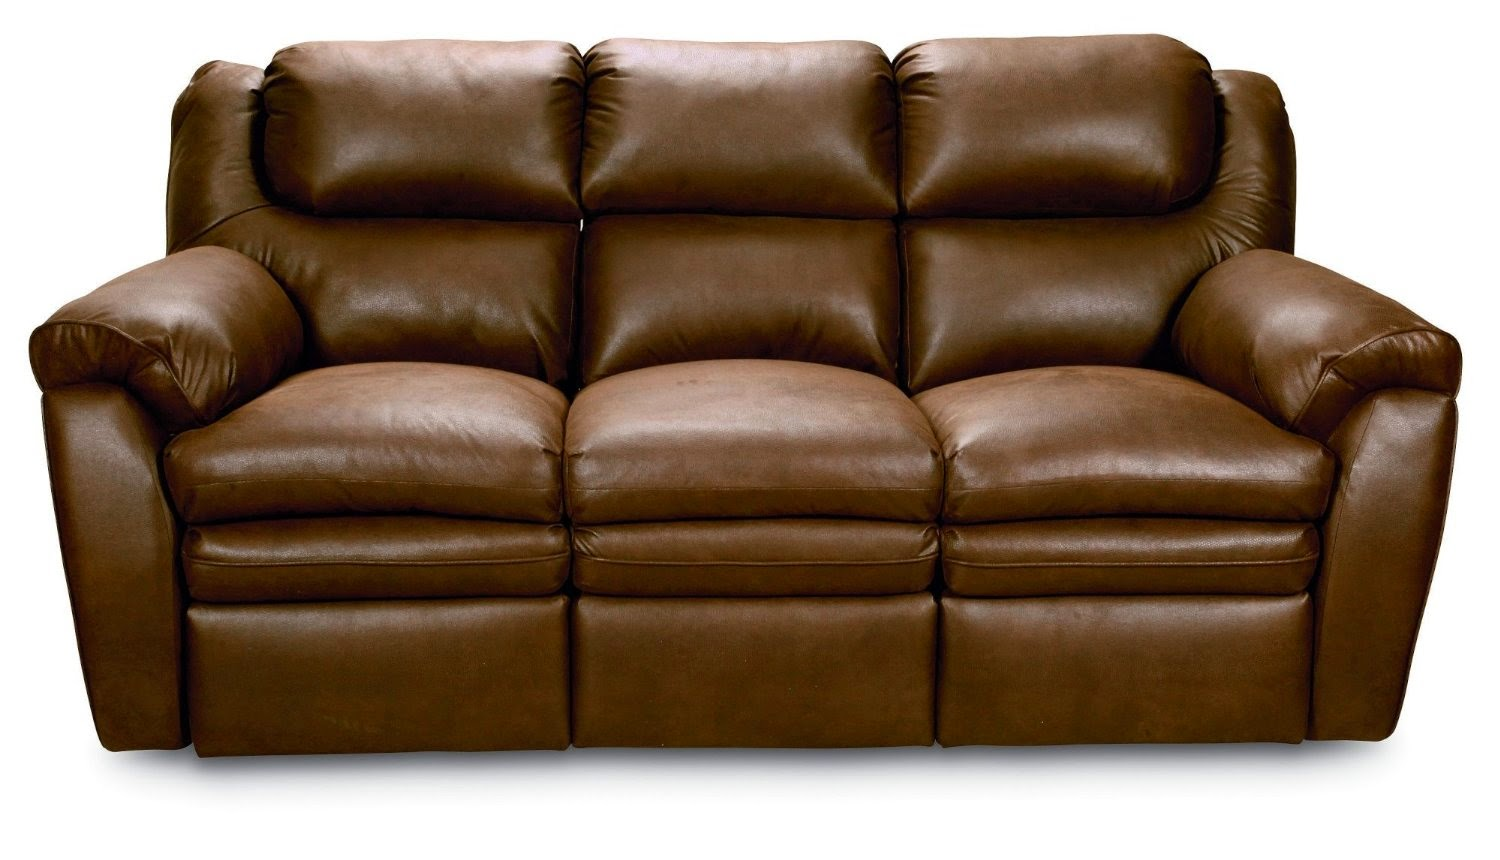 Cheap reclining sofas sale lane double reclining sofa with storage drawer Reclining loveseat sale